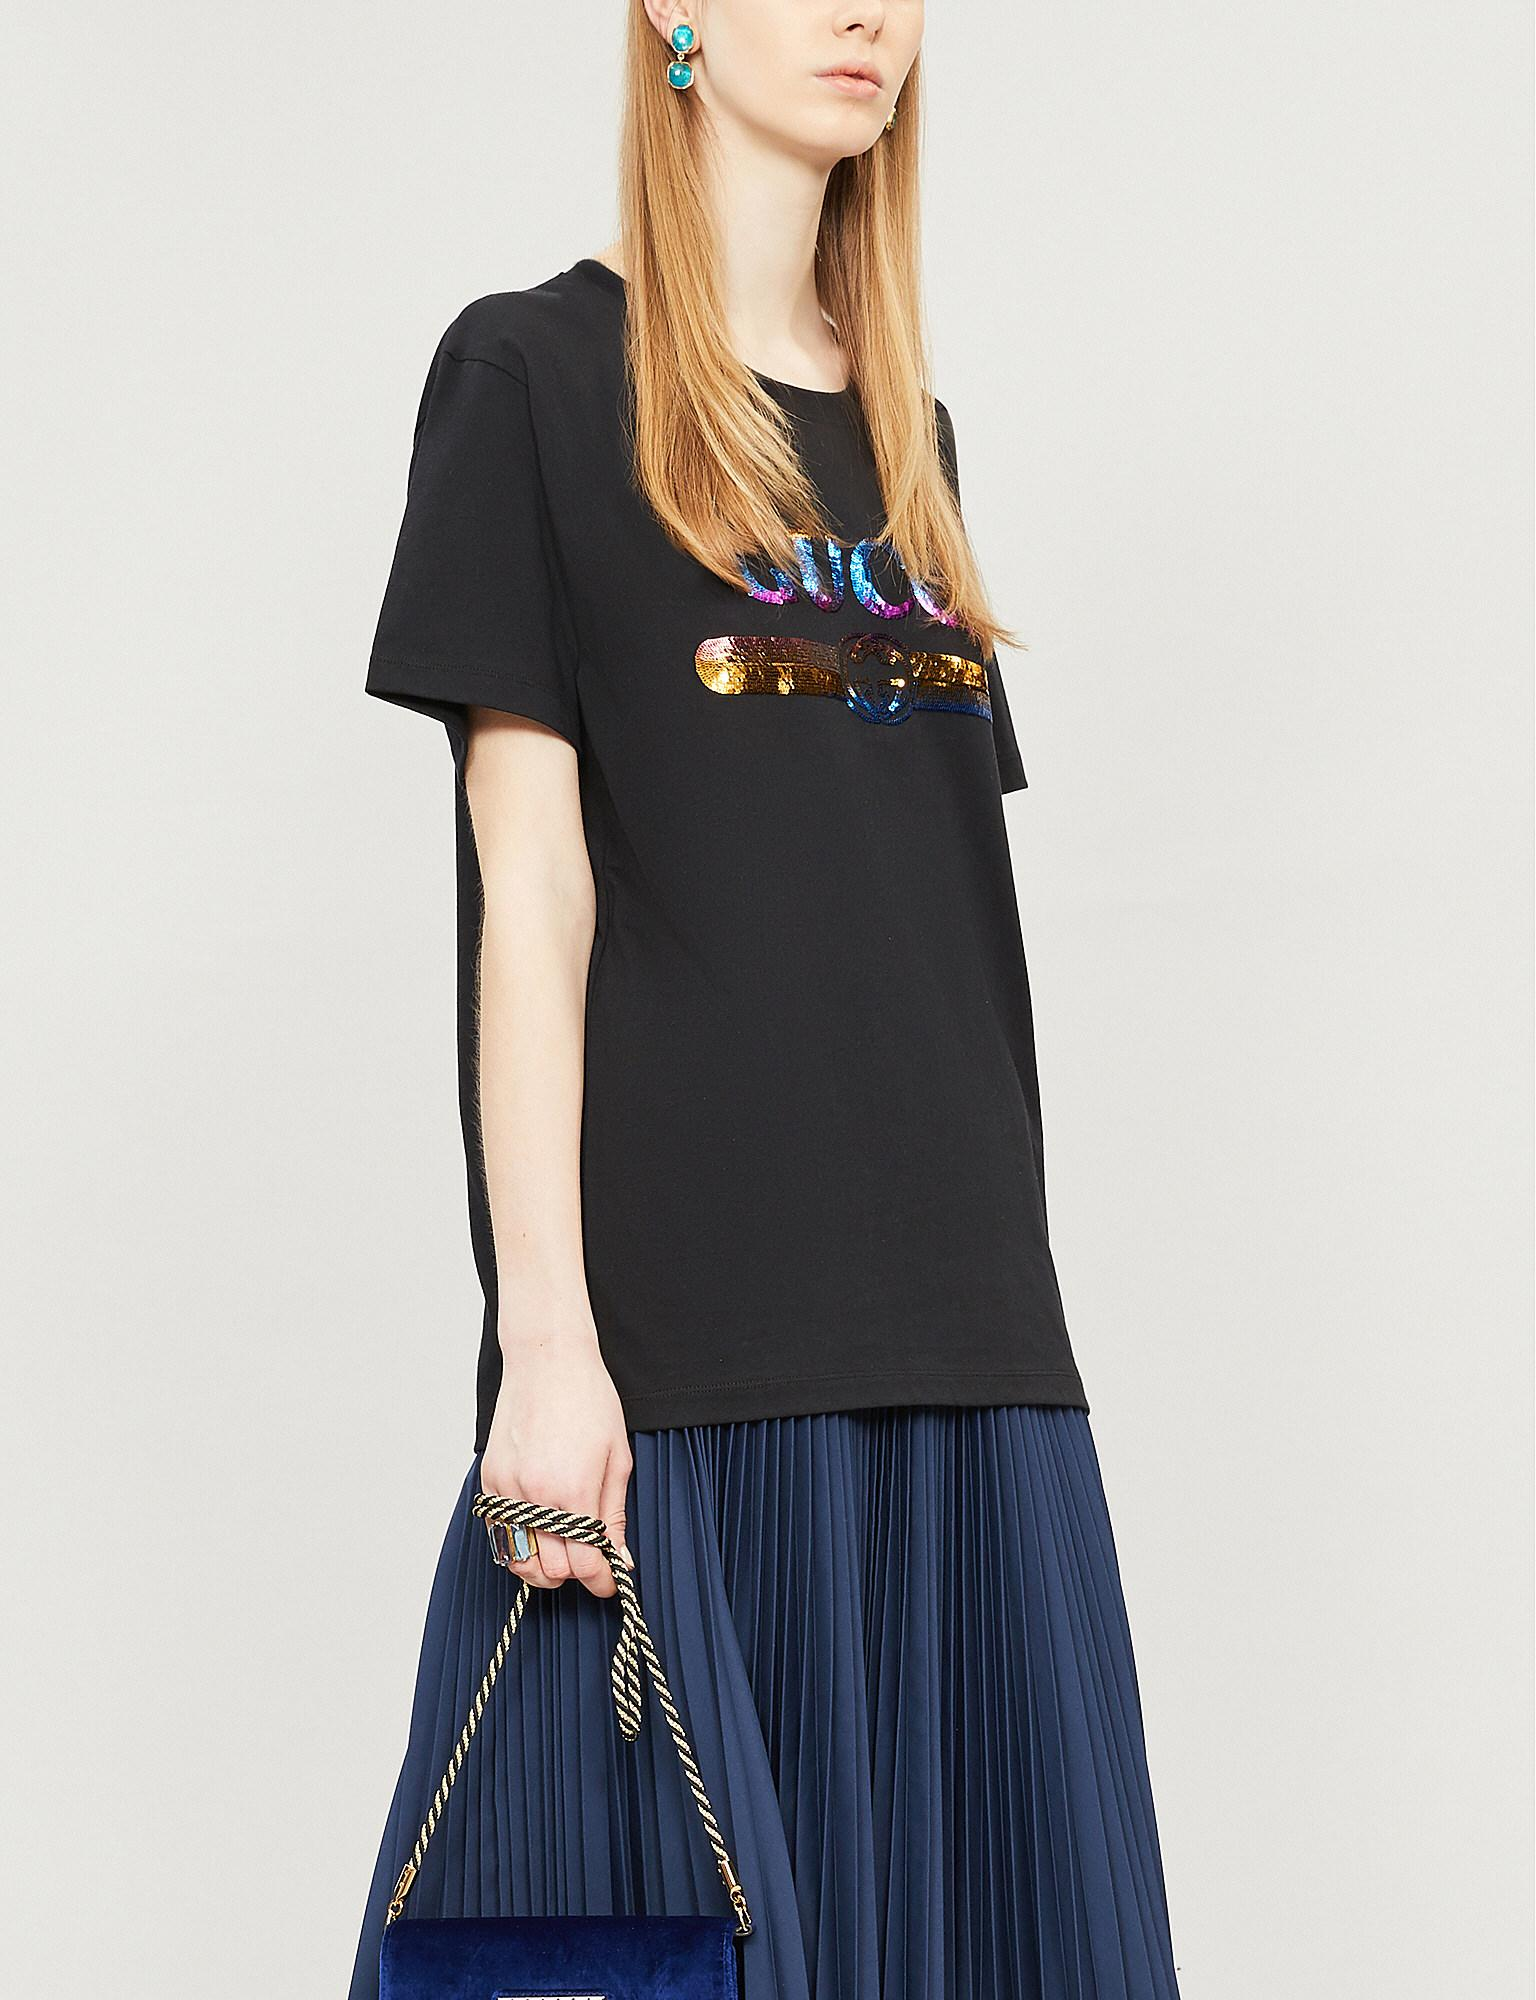 821dc2f7d Lyst - Gucci Sequin-embellished Cotton-jersey T-shirt in Black